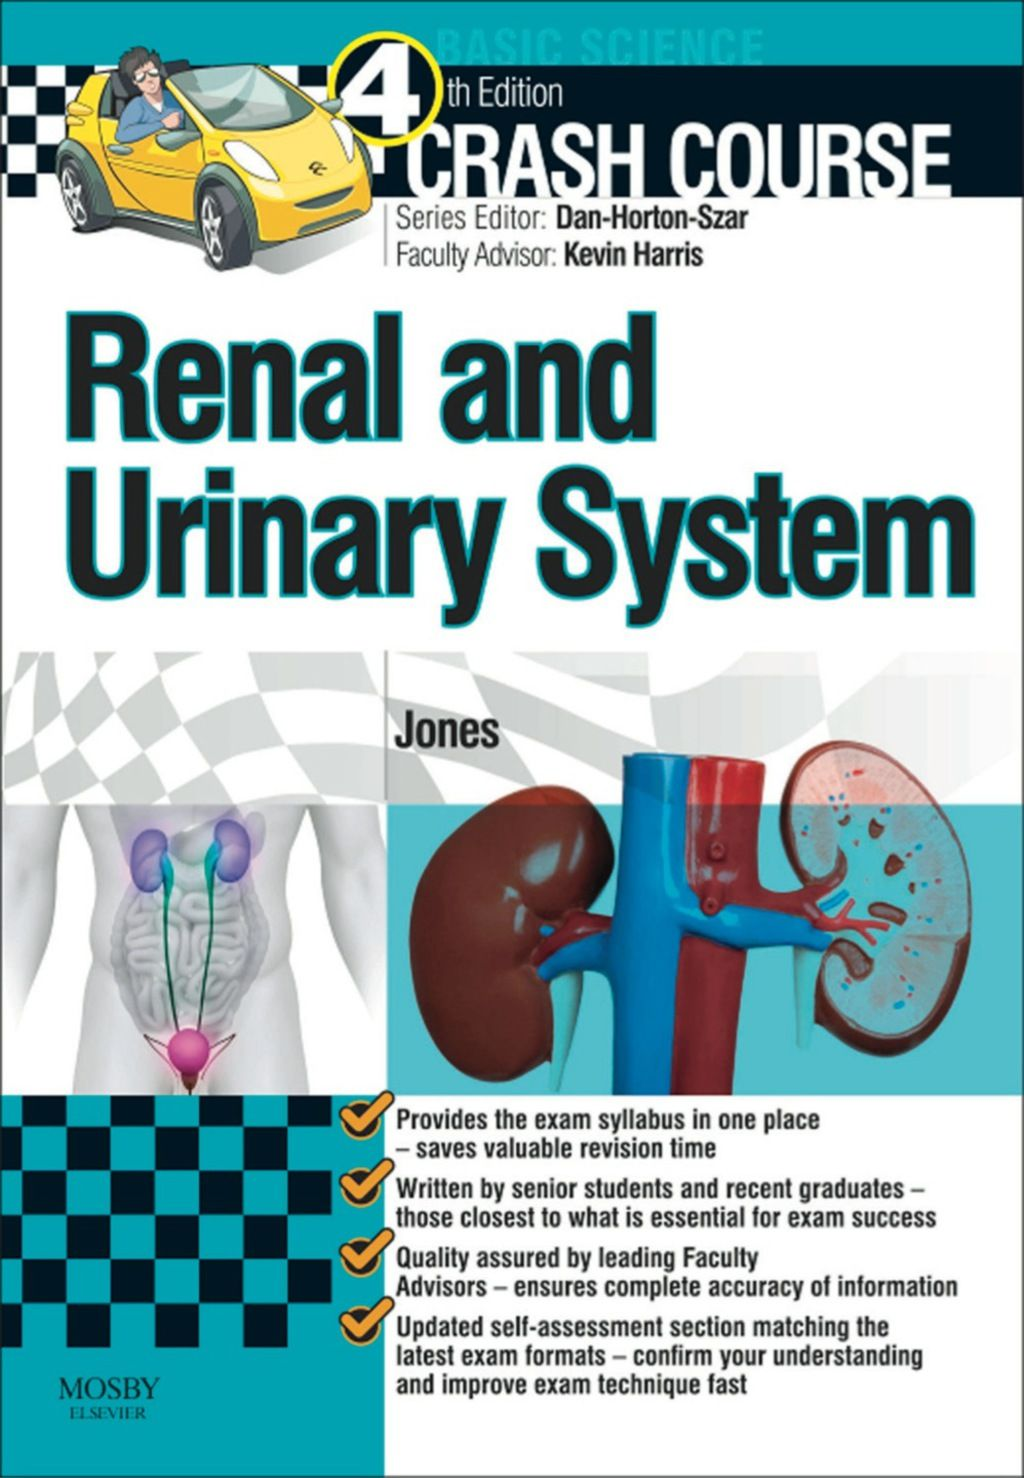 Crash Course Renal And Urinary System Ebook